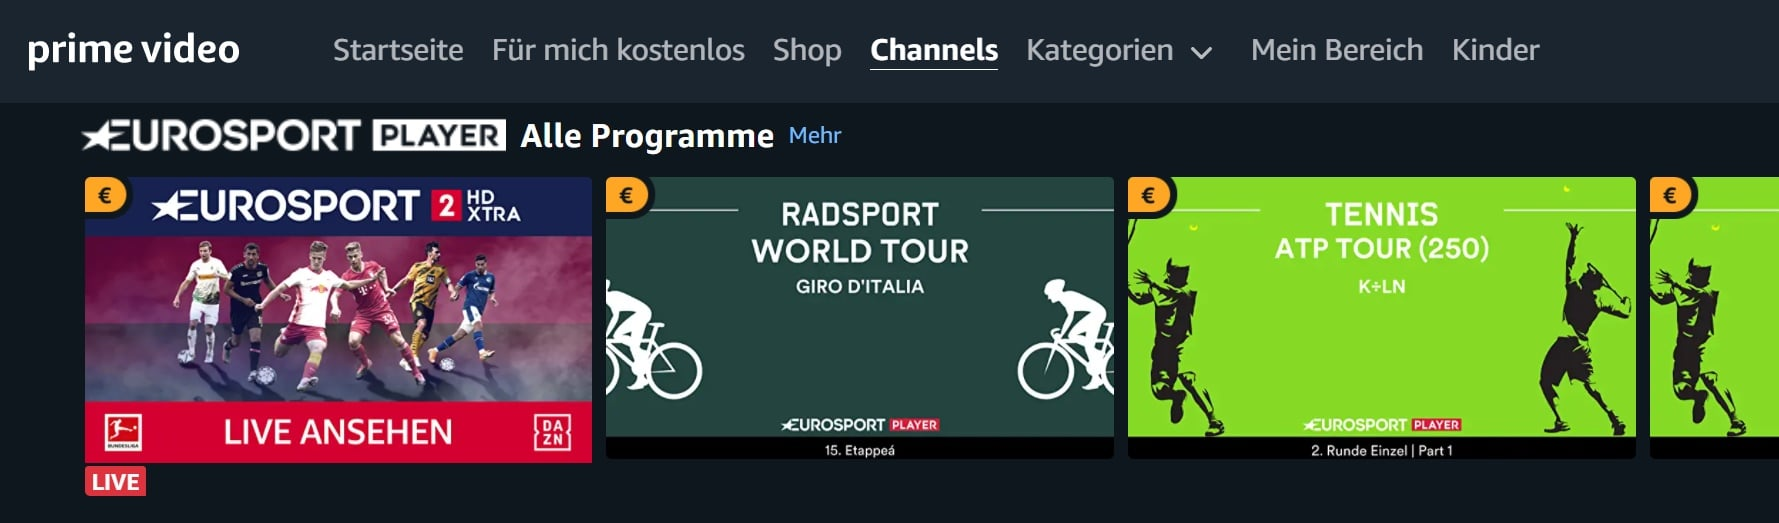 eurosport-player-angebote-prime-video